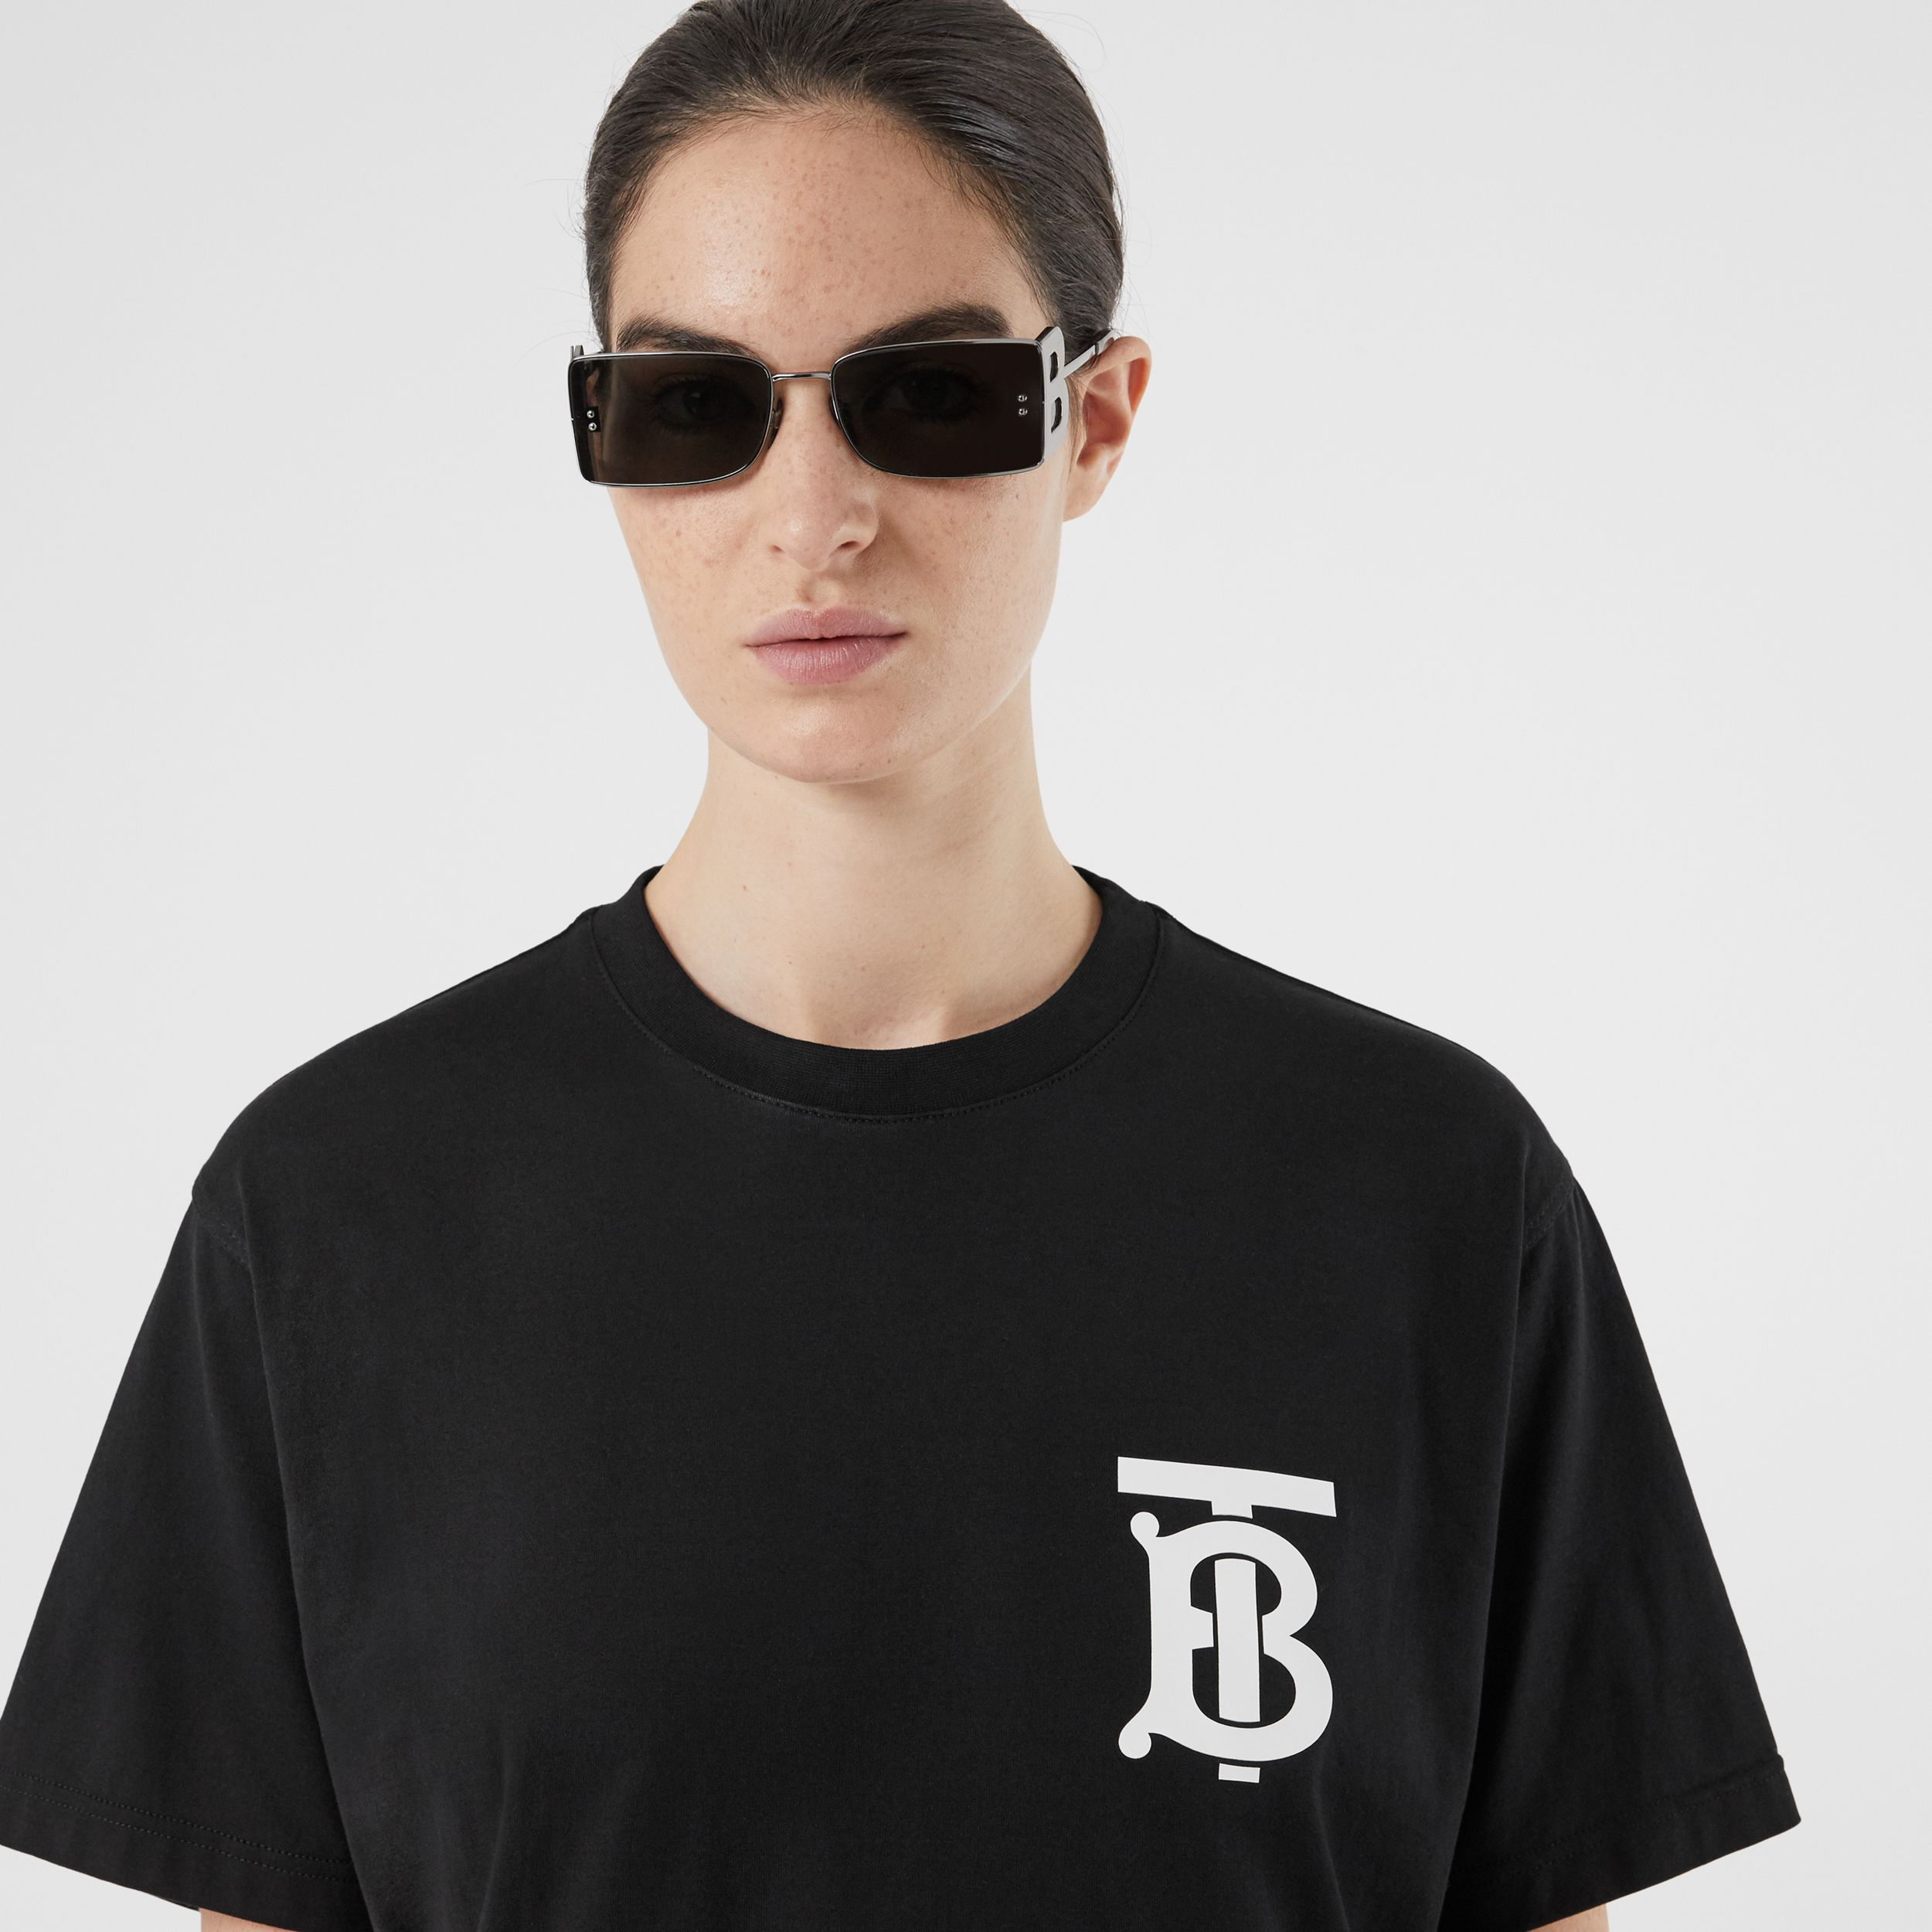 Monogram Motif Cotton Oversized T-shirt in Black - Women | Burberry United States - 2